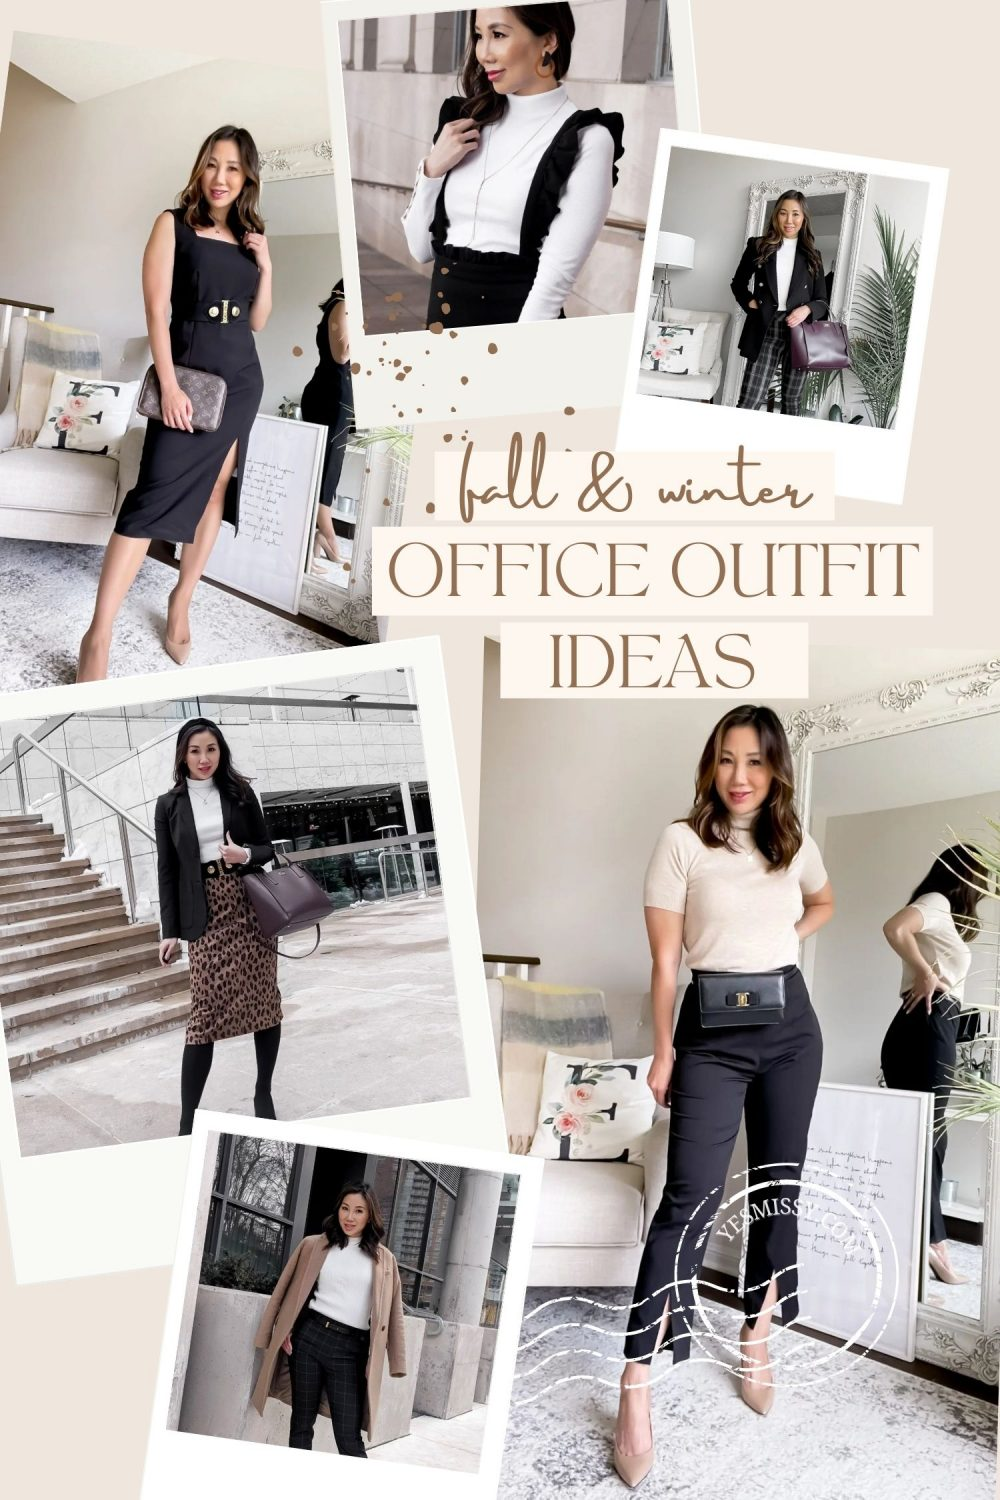 Fall and winter workwear and office outfit ideas for women. Styled by Canadian fashion blogger Eileen Lazazzera. Check out yesmissy.com for more fall outfits, going out looks, trends and styling tips.